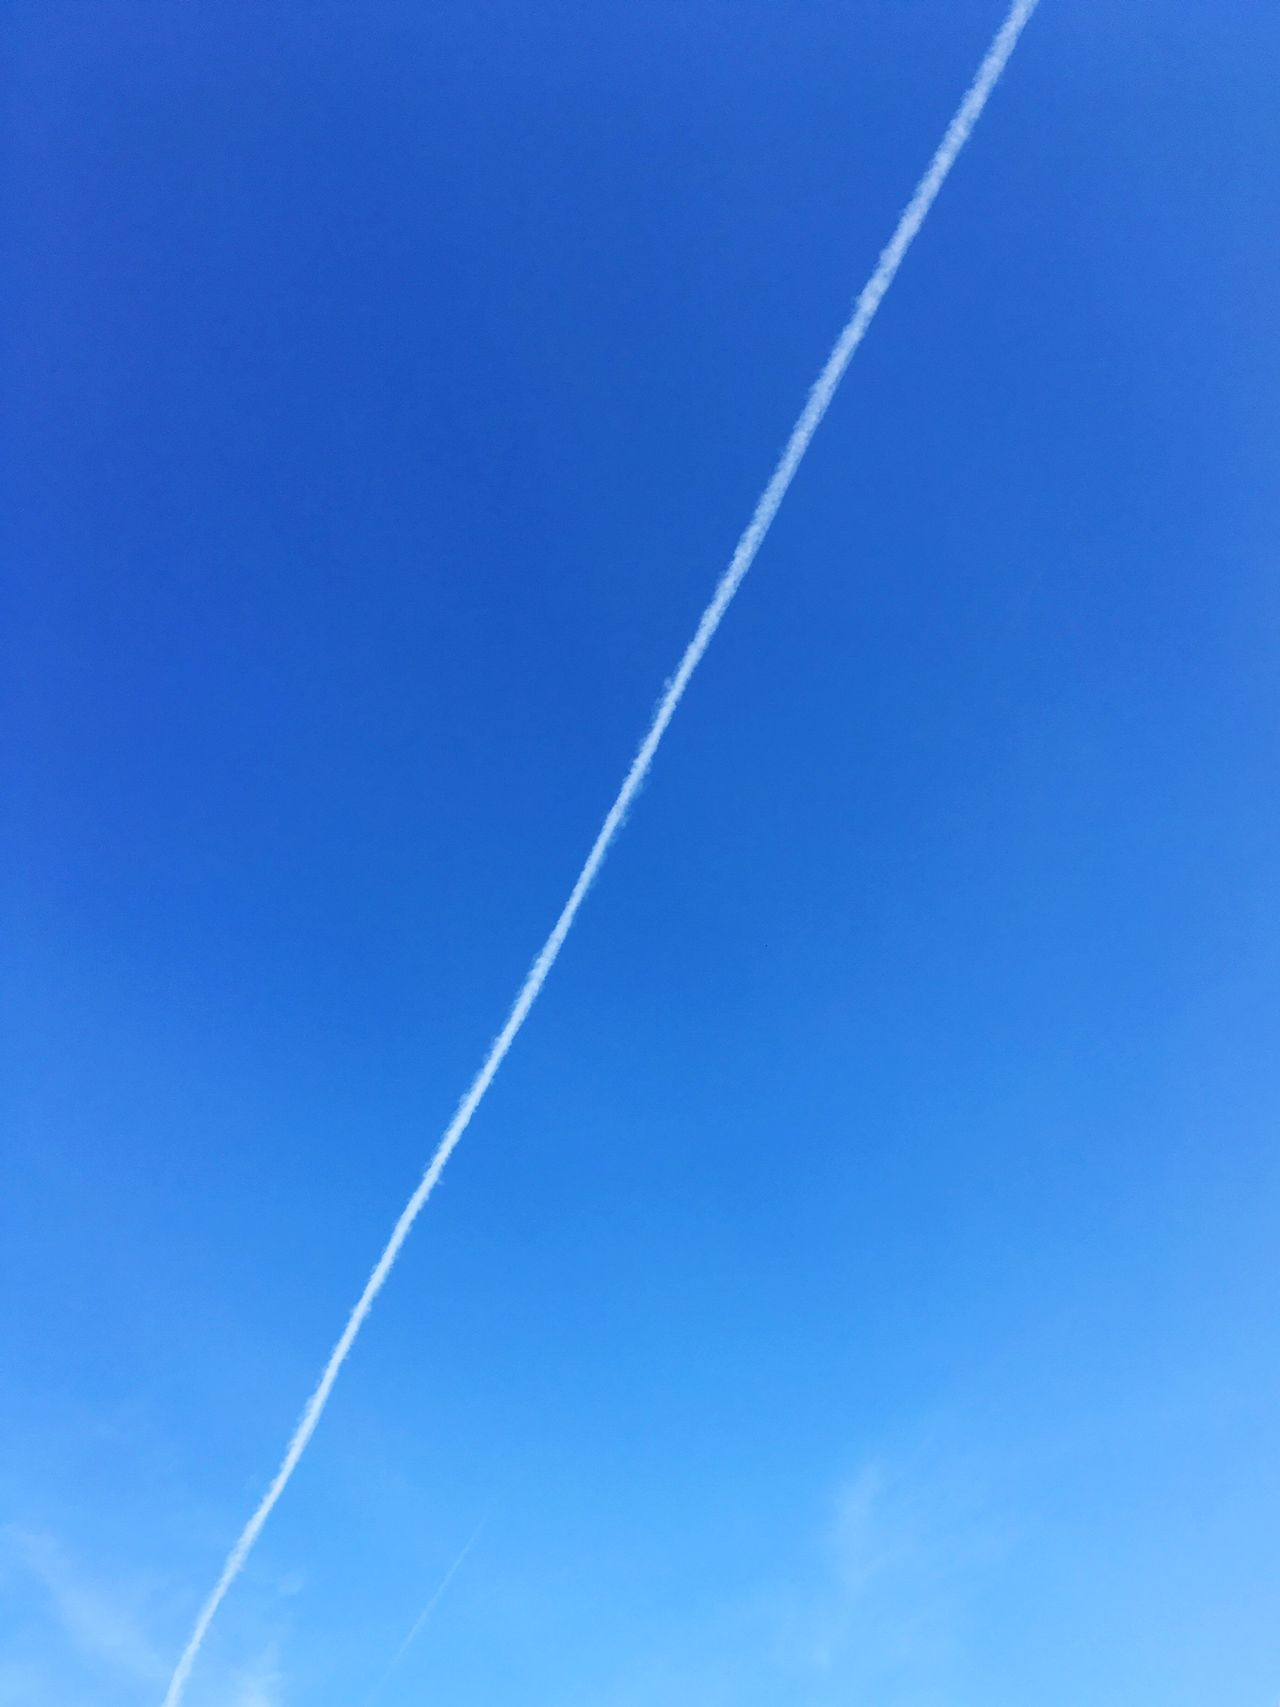 Trail in the sky Trail Contrail Contrails Trails Contrail Vapor Trail Clear Sky Sky Sky_collection White Outdoors Long Trace Traces Plane Trail Film Blue Scenics Scenic Lines Lines And Shapes LINE Shape Shapes Shapes And Forms